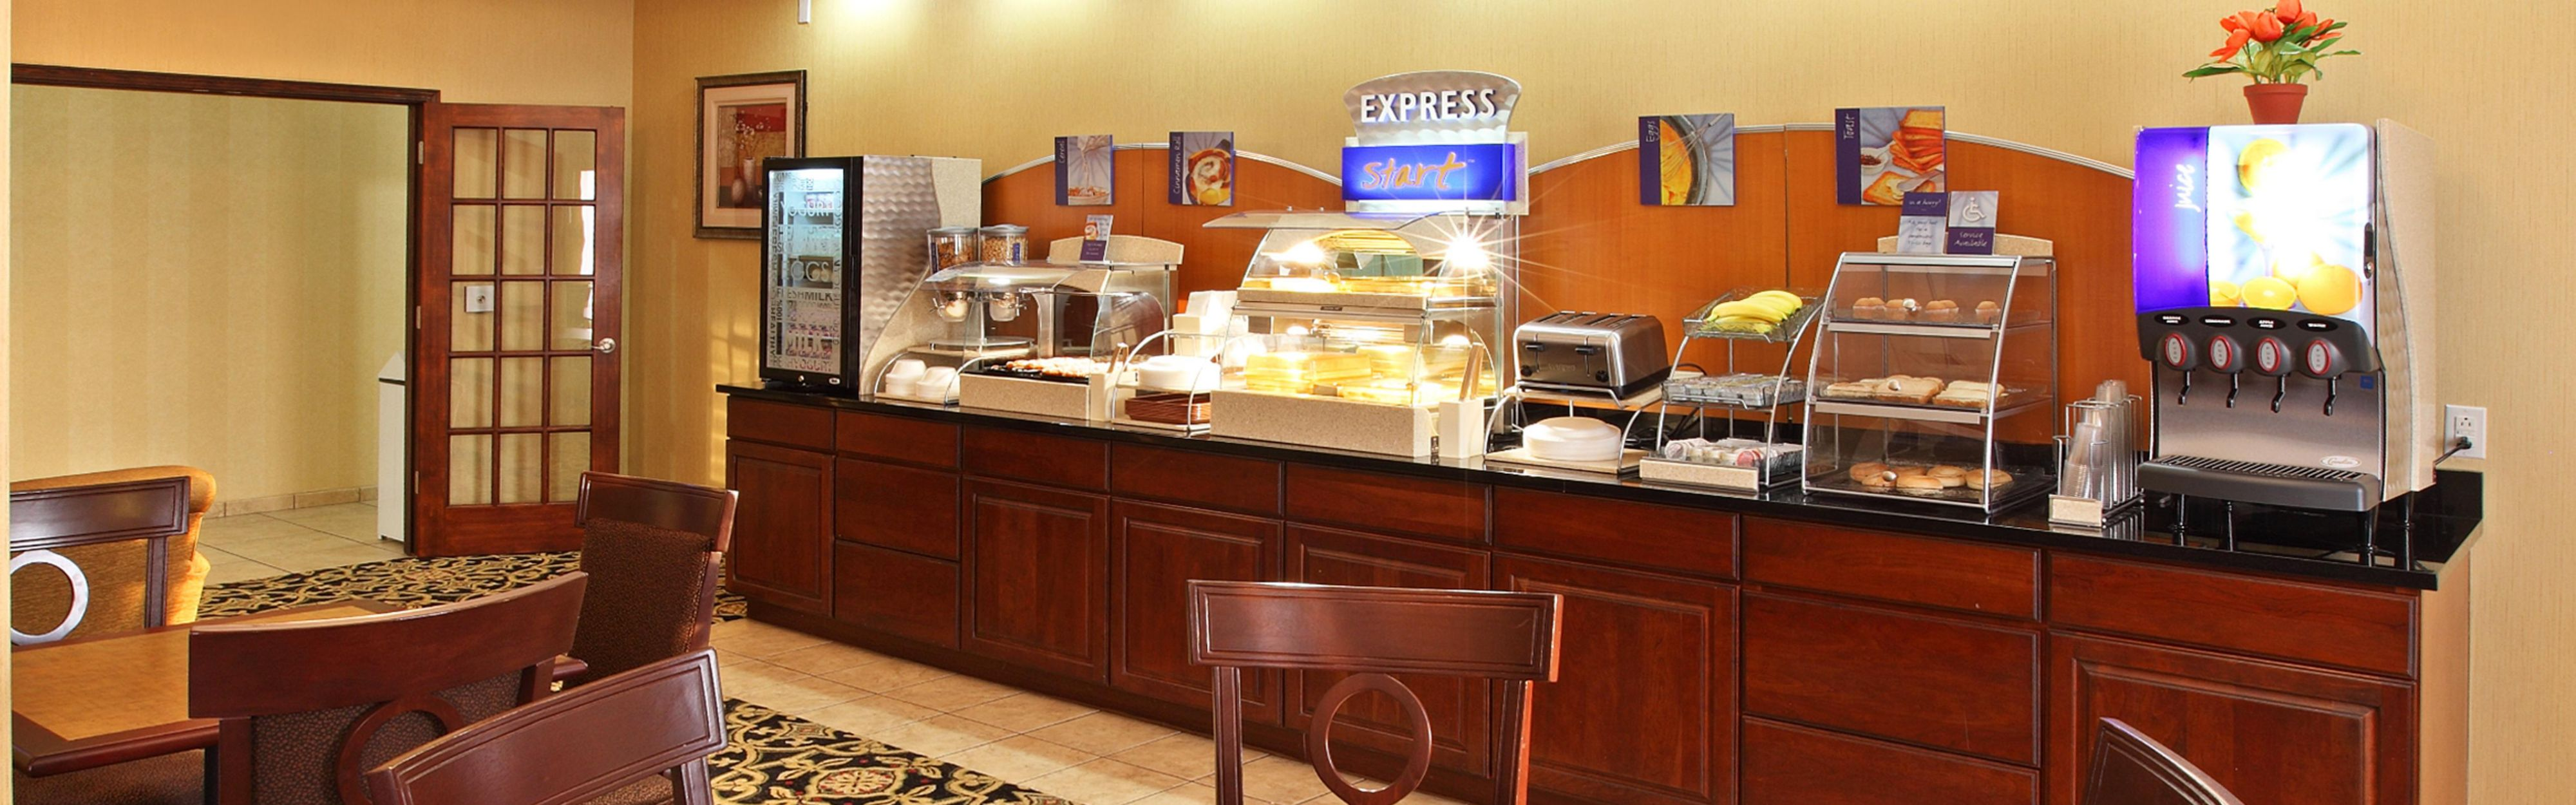 Holiday Inn Express & Suites Clarksville image 3